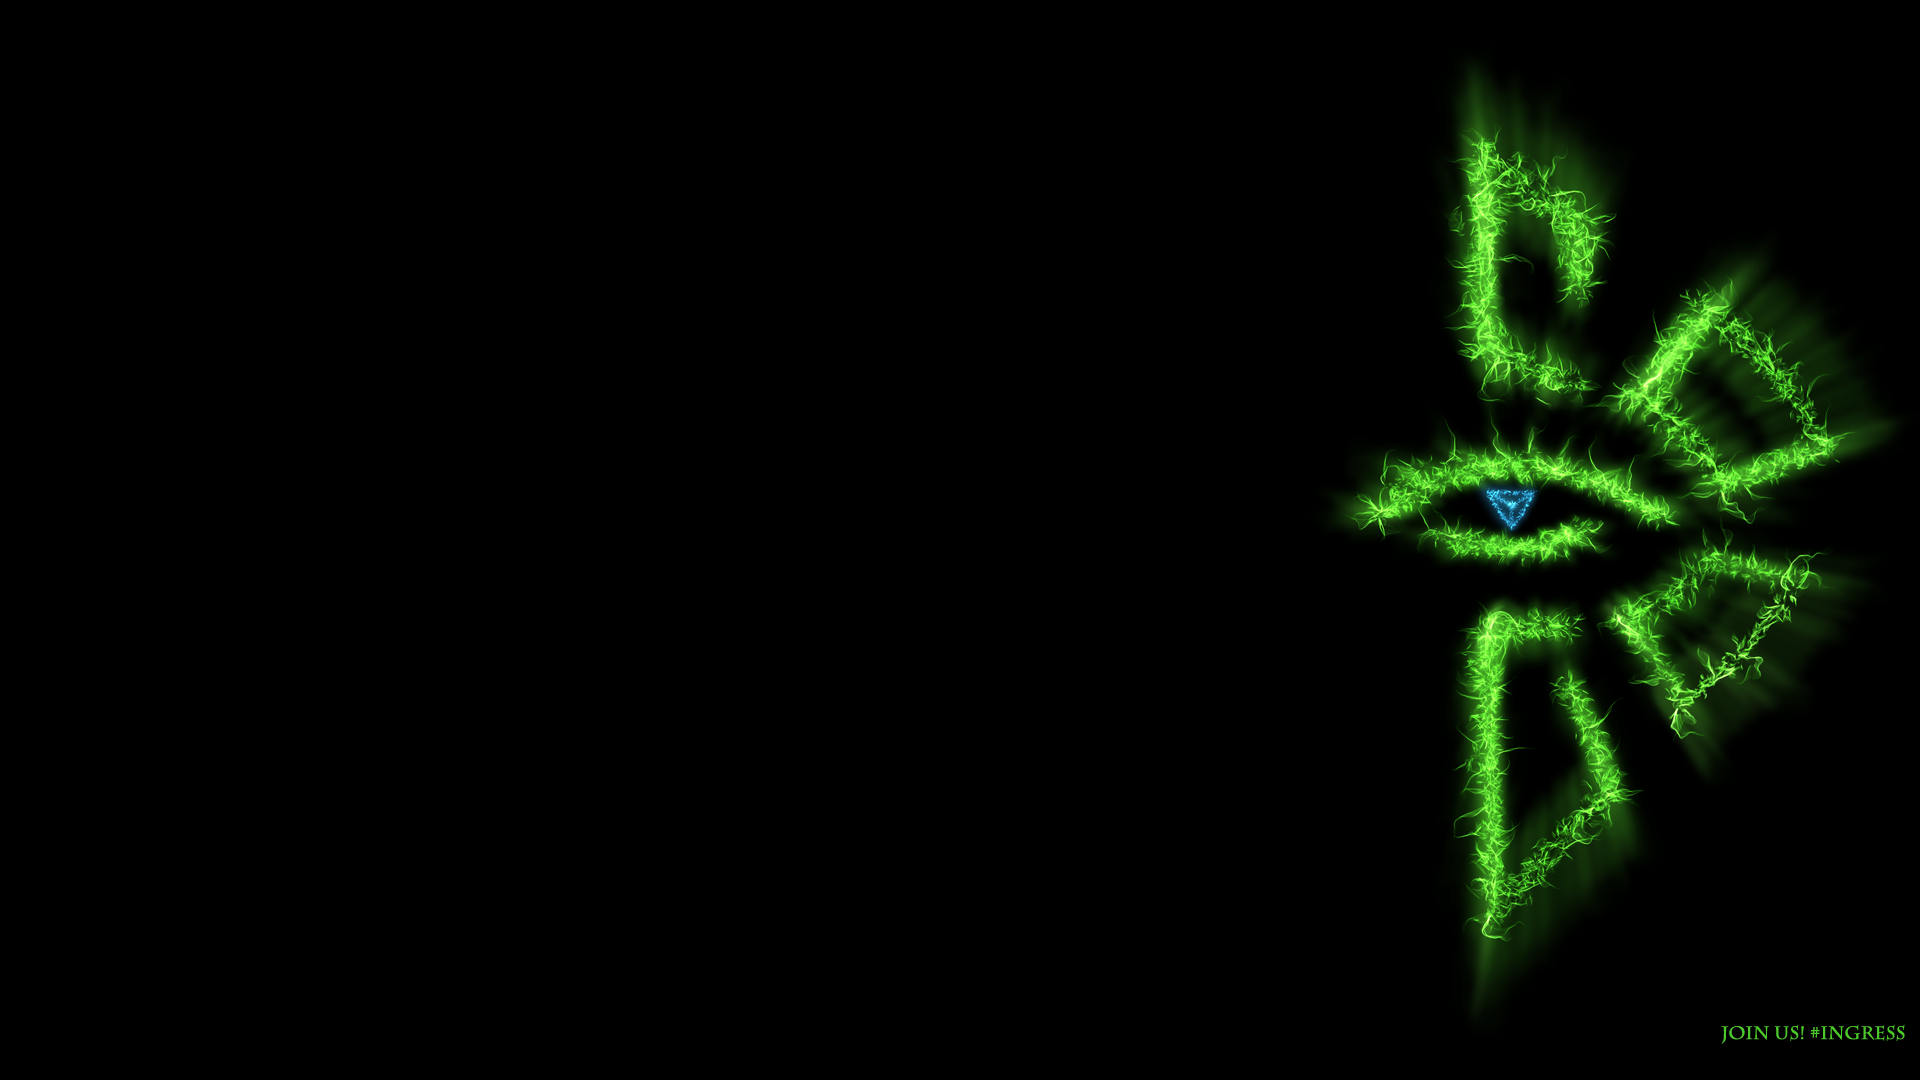 Created an enlightened wallpapers set just for you guys its created an enlightened wallpapers set just for you guys its 1920x1080 ima altavistaventures Image collections